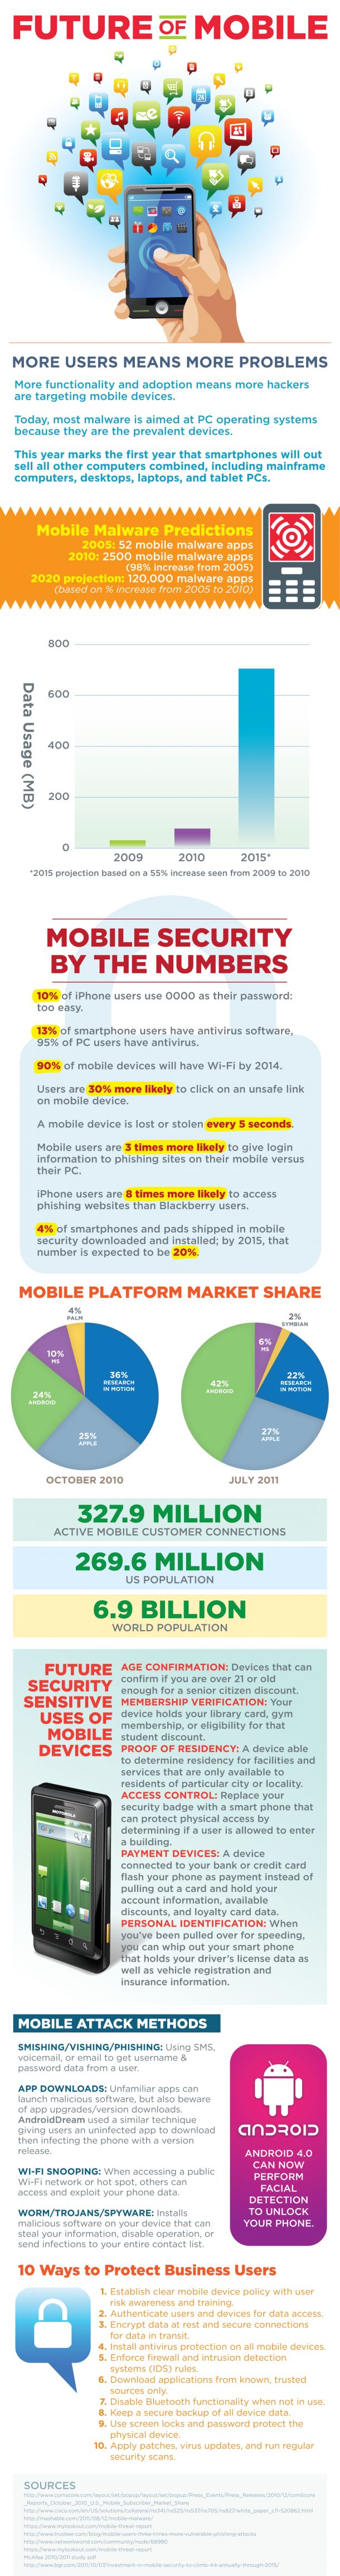 Future of Mobile [Infographic] - May 2012: Social Media, Mobiles Technology, Infographic Mobiles, Infographic Pin, Interesting Stuff, Mobiles Infographic, Mobiles Security, Mobiles Marketing, Rise Mobiles Computers